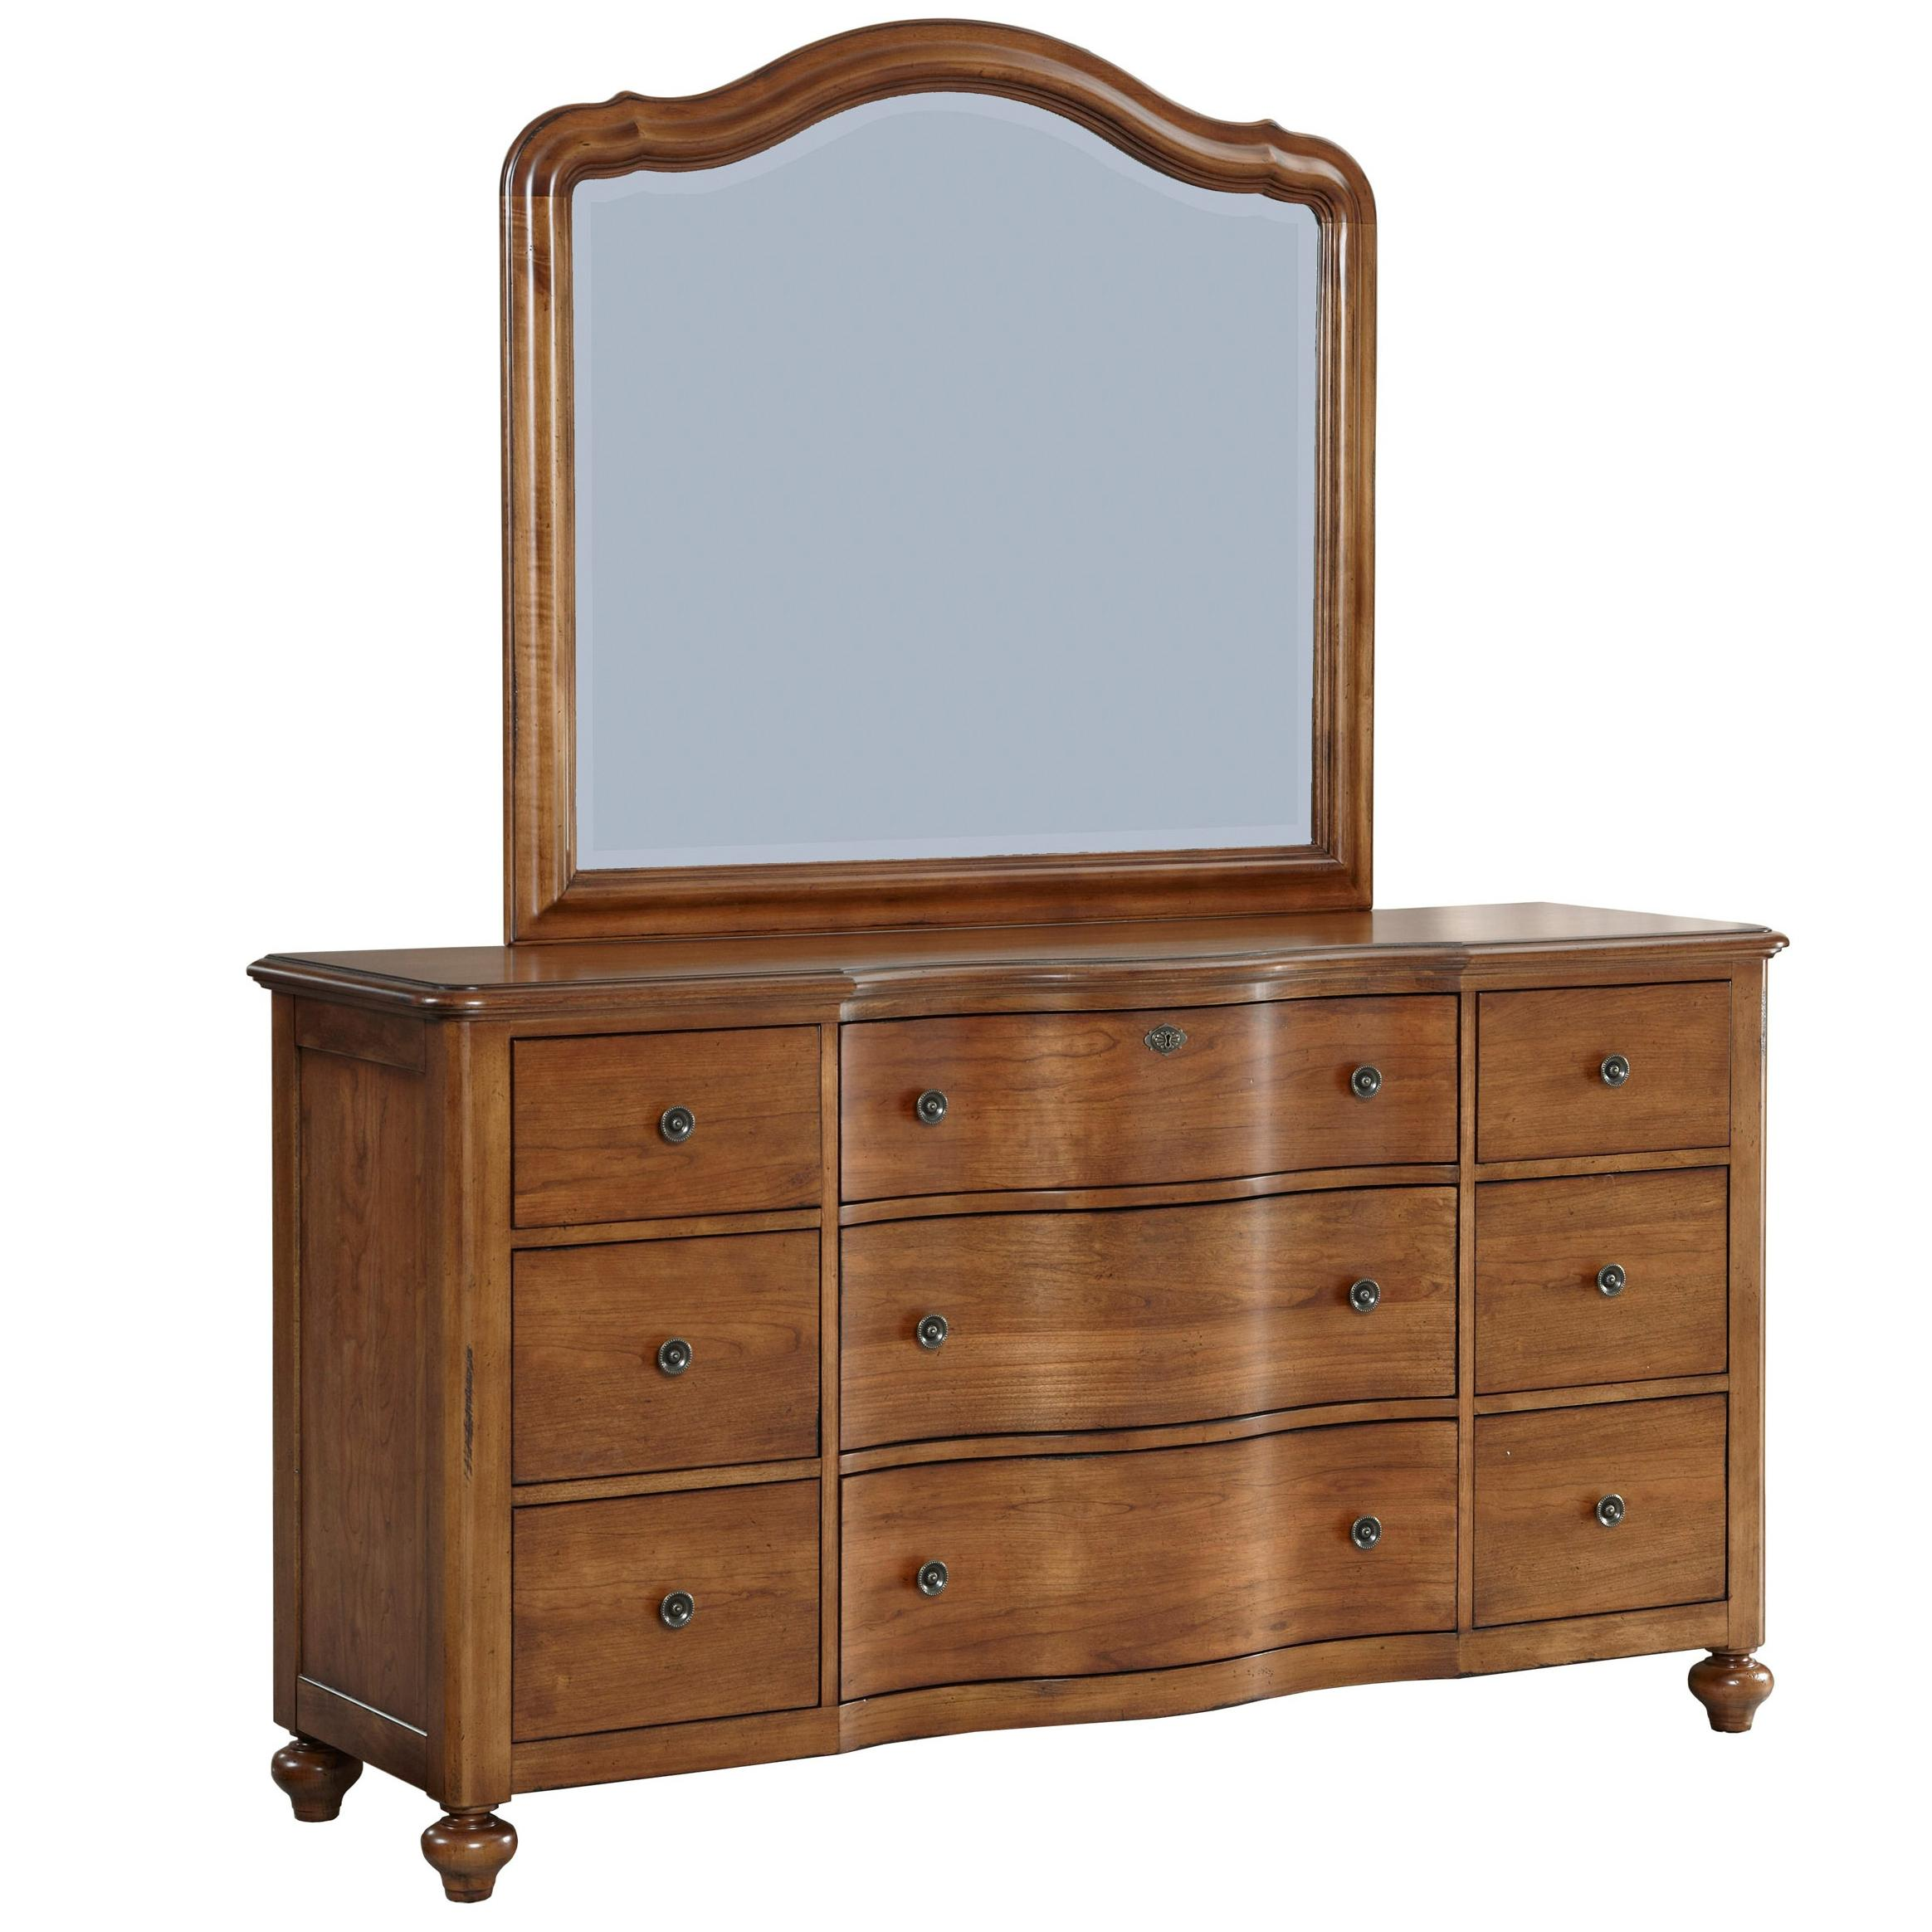 Broyhill Furniture Creswell 9 Drawer Dresser and Mirror Set - AHFA ...